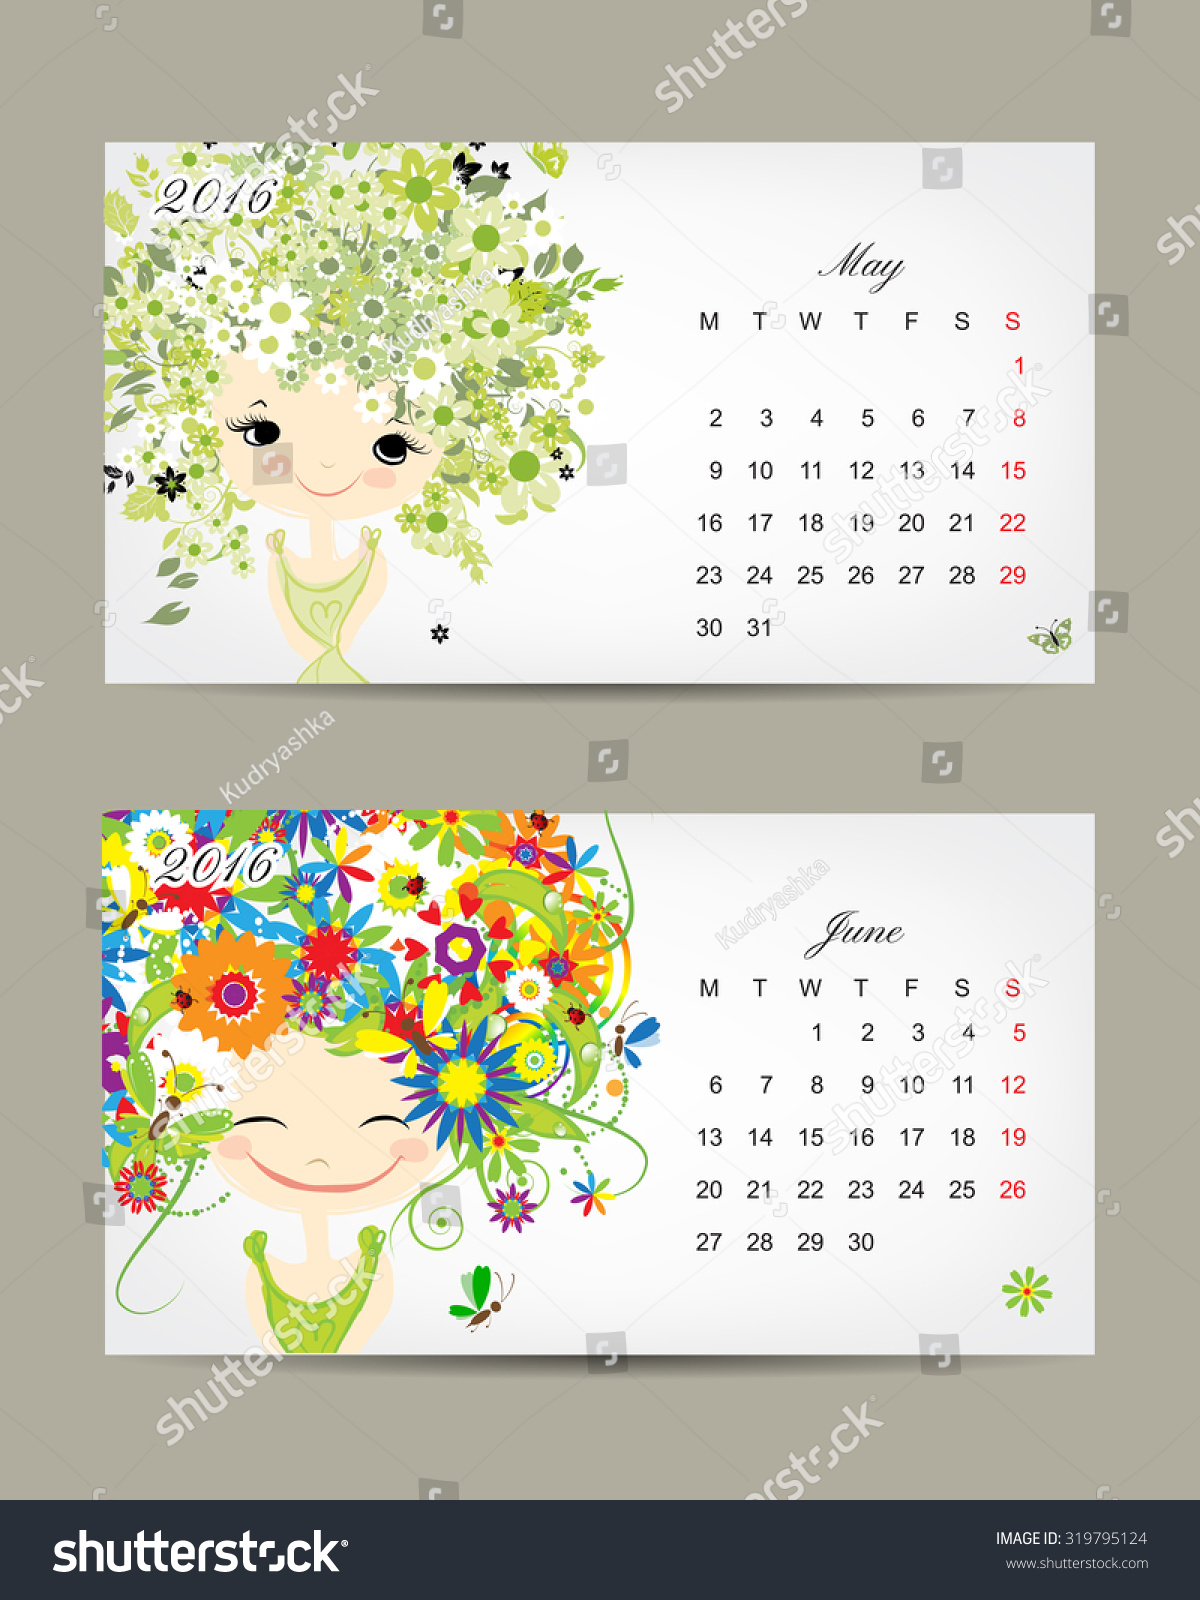 Calendar Month Illustration : Calendar may june months season stock vector